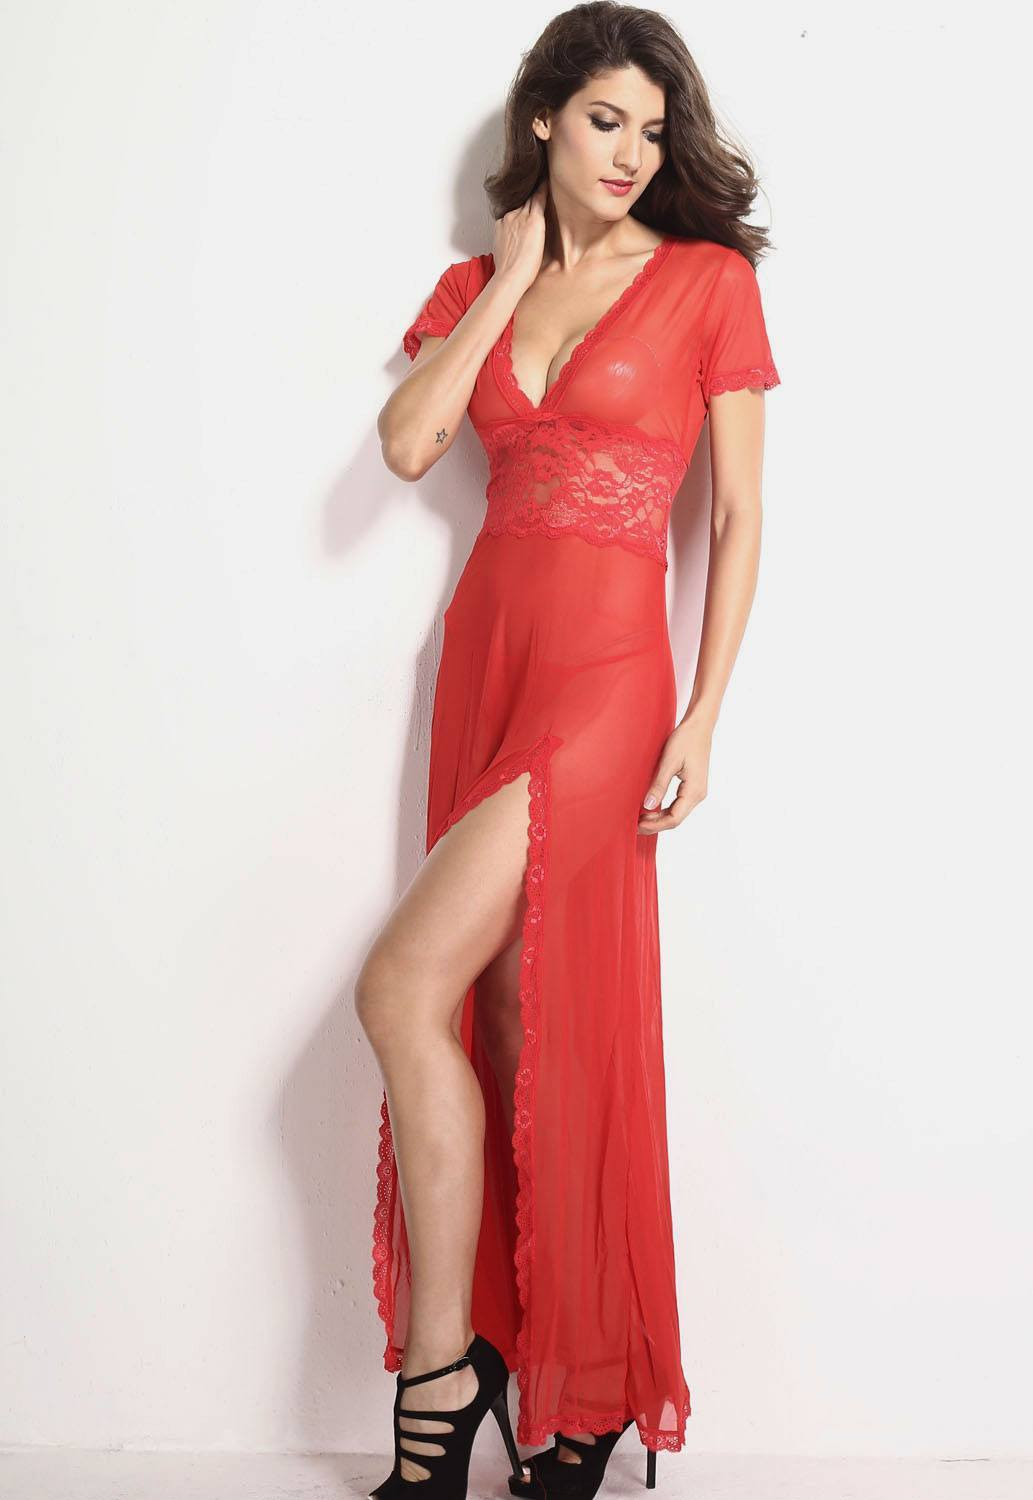 Red Mesh and Lace V Neck Lingerie Gown - Ninostyle